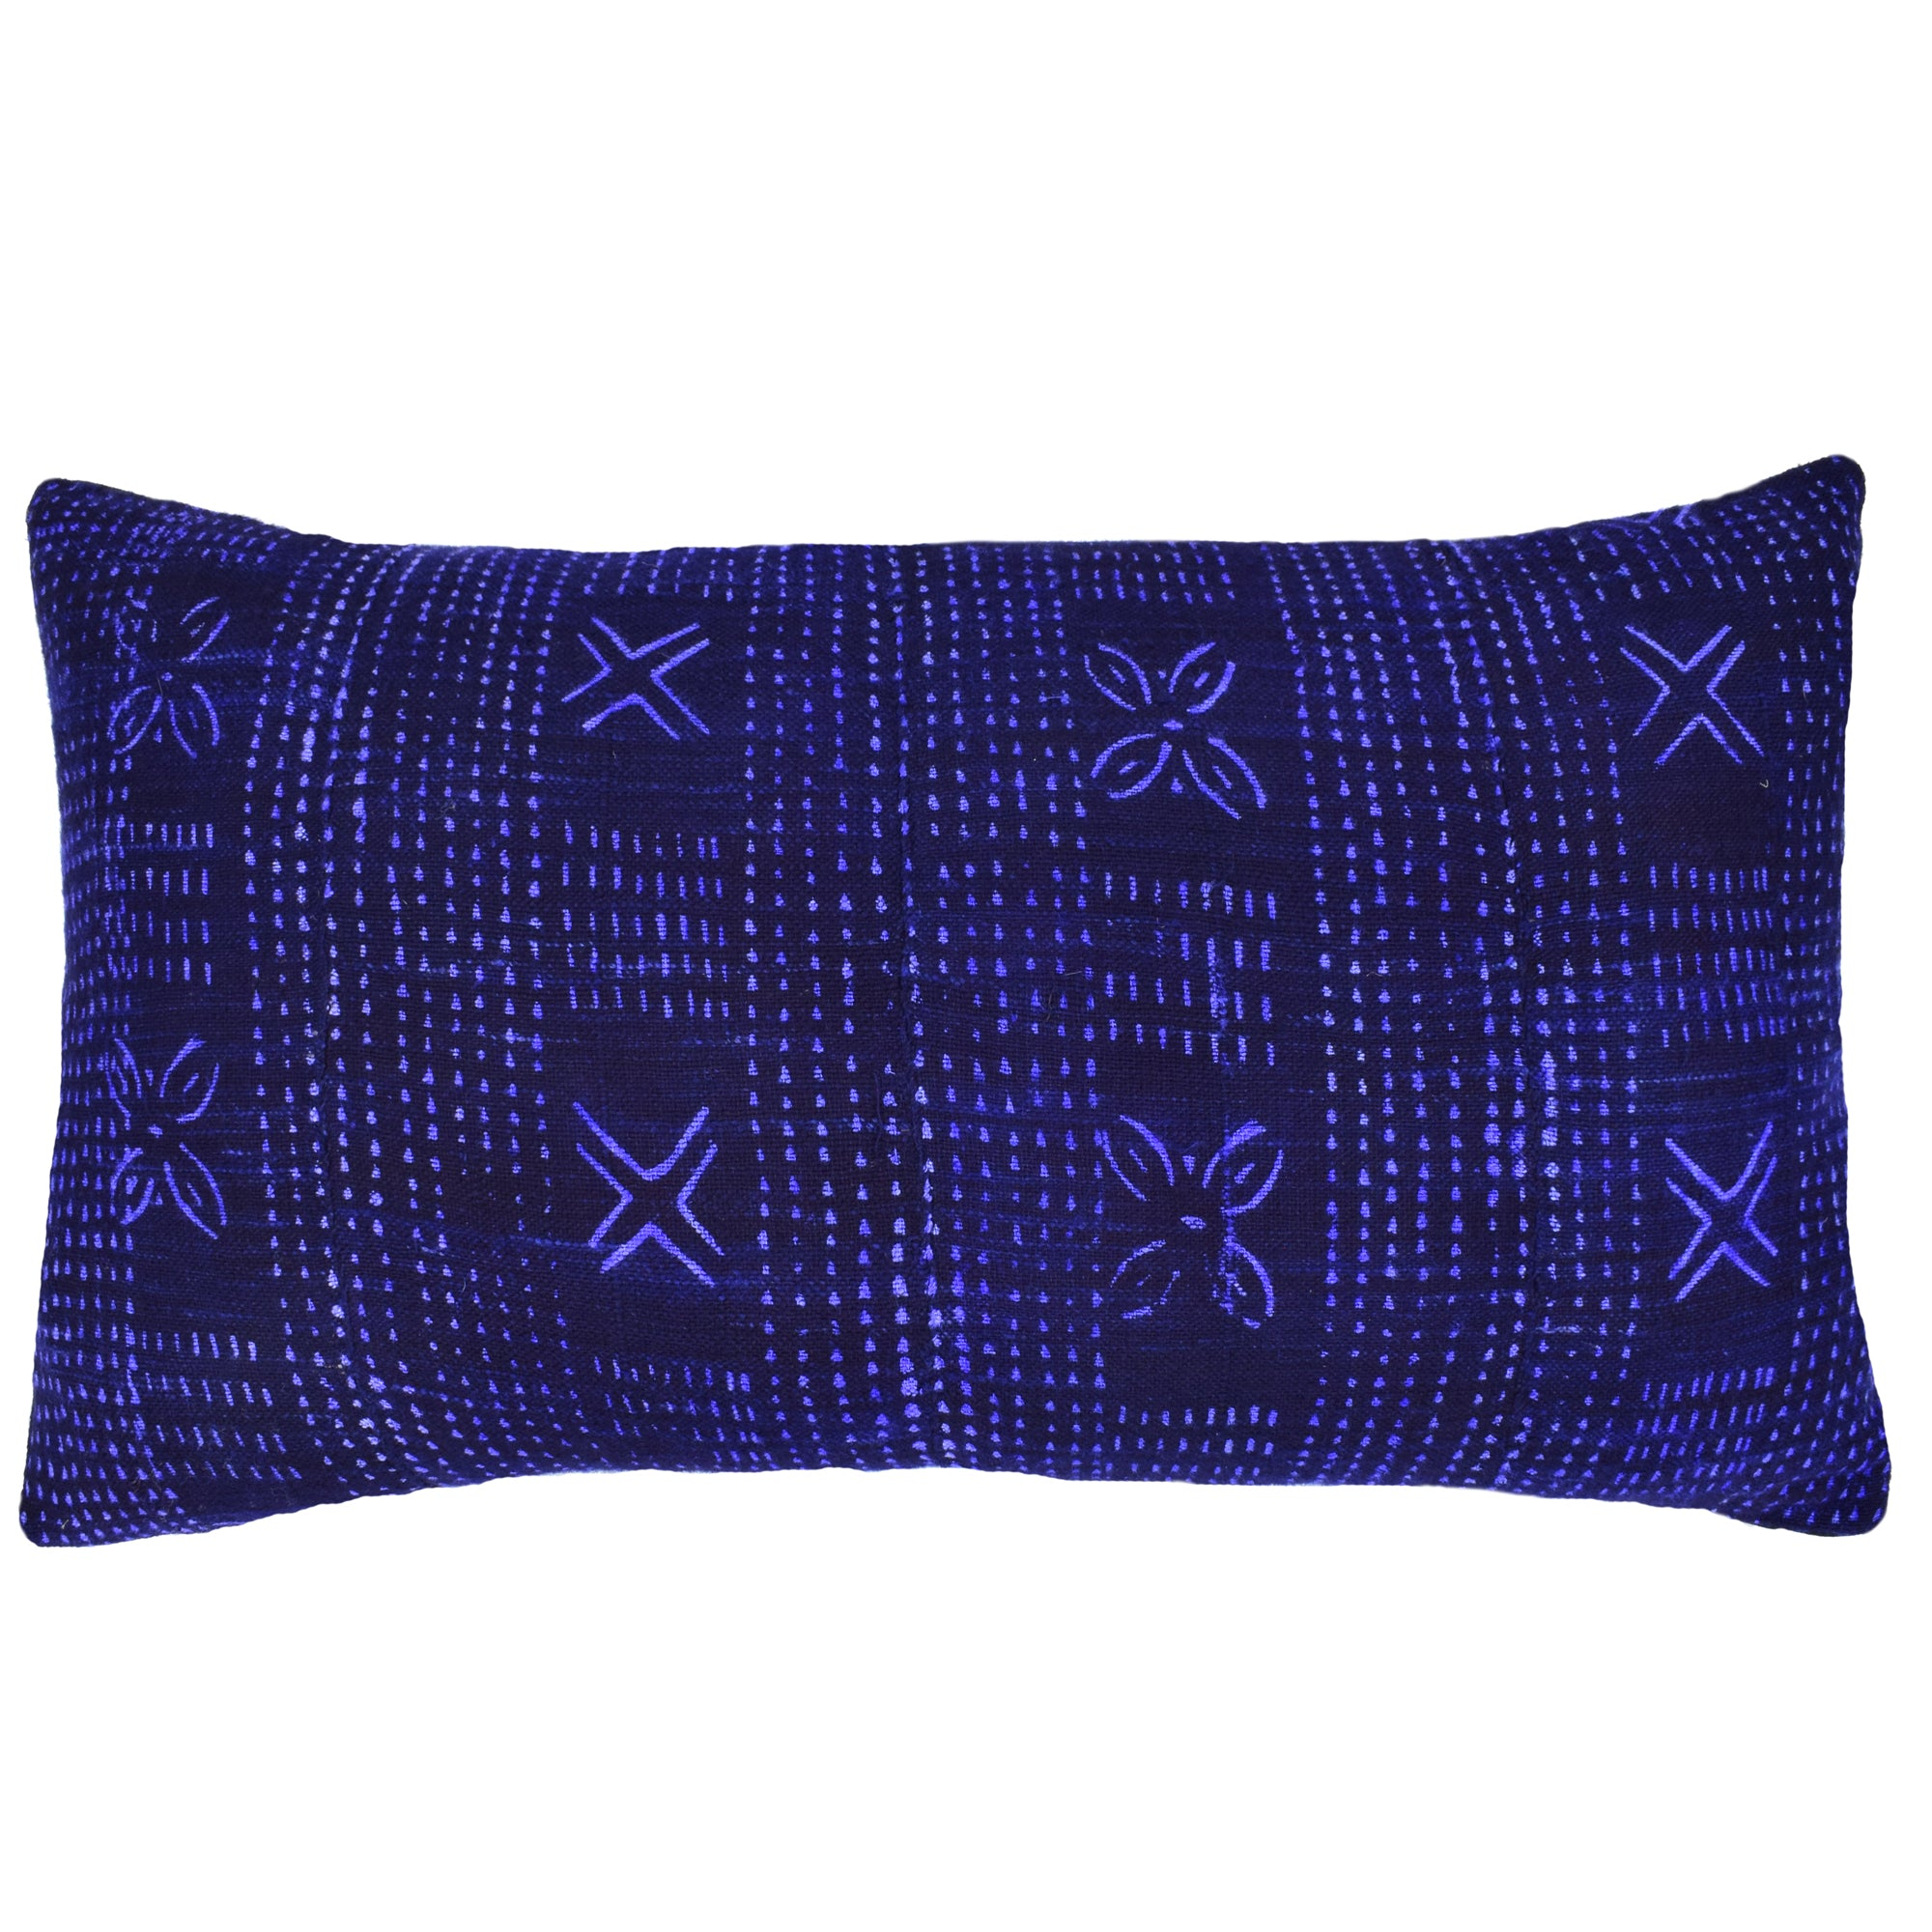 Indigo Blue Navy Mali Mudcloth Cushion Ikat Crosses Flowers Lumbar